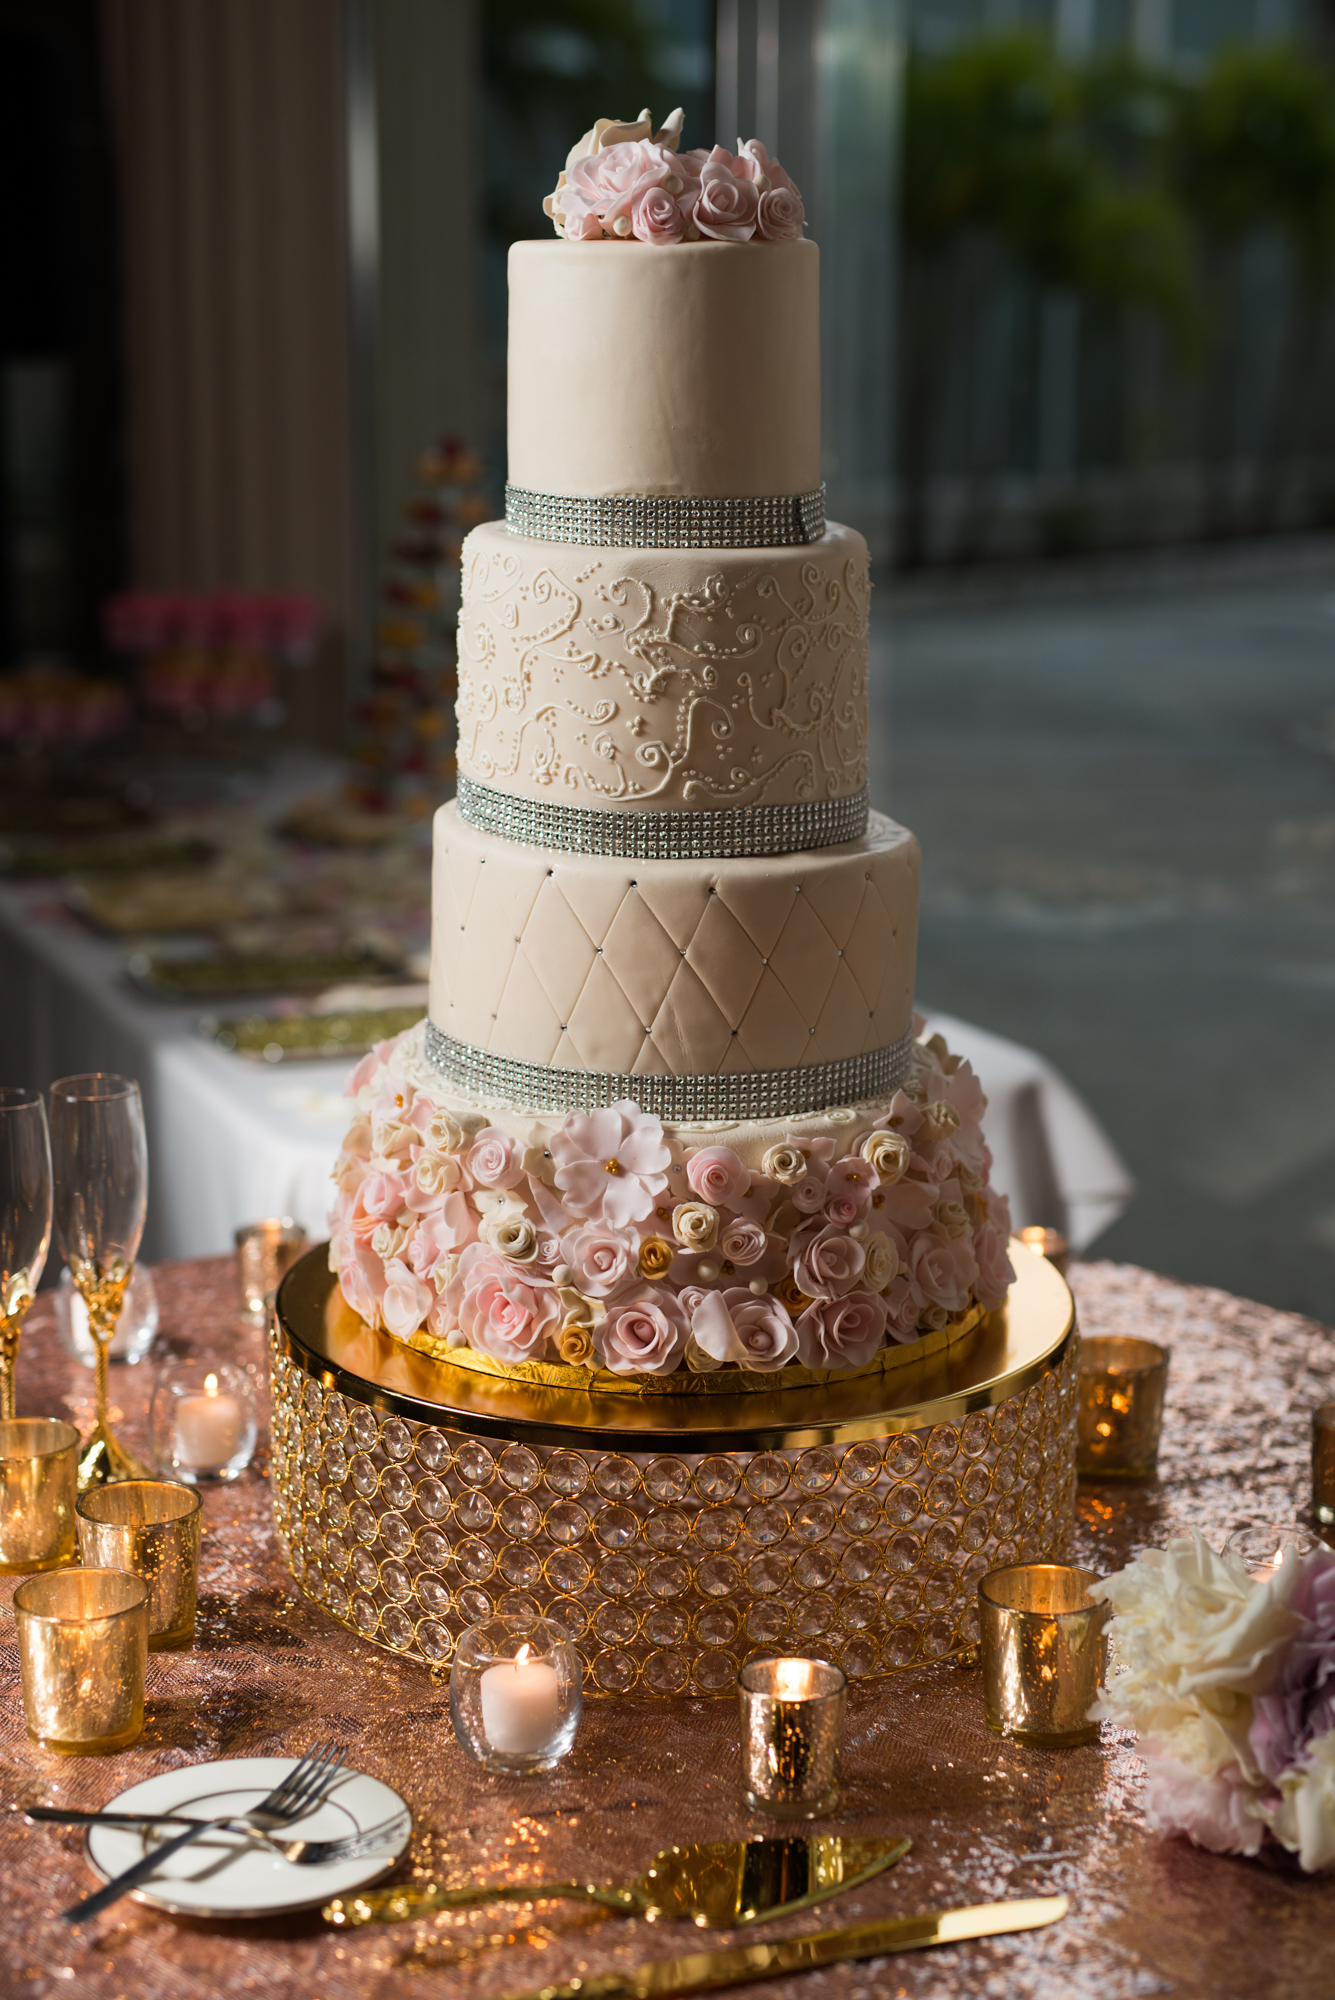 Mommy of Three Cakery - Their beautiful cake was provided by Mai Linda Nguyen of Mommy of Three Cakery.